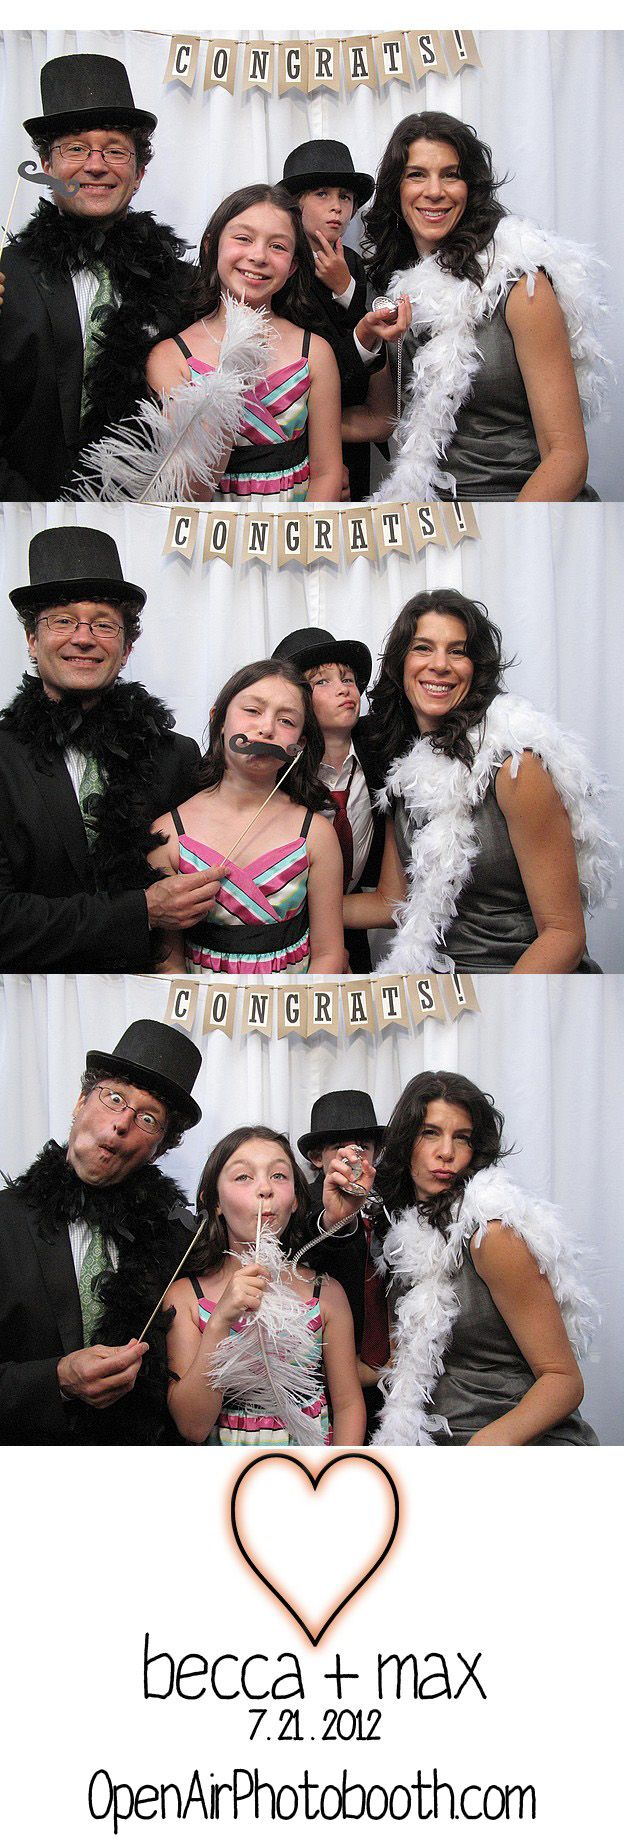 Who doesn't love a good photo booth? Open Air entertainment also offers flip books. So fun to have at weddings and events!